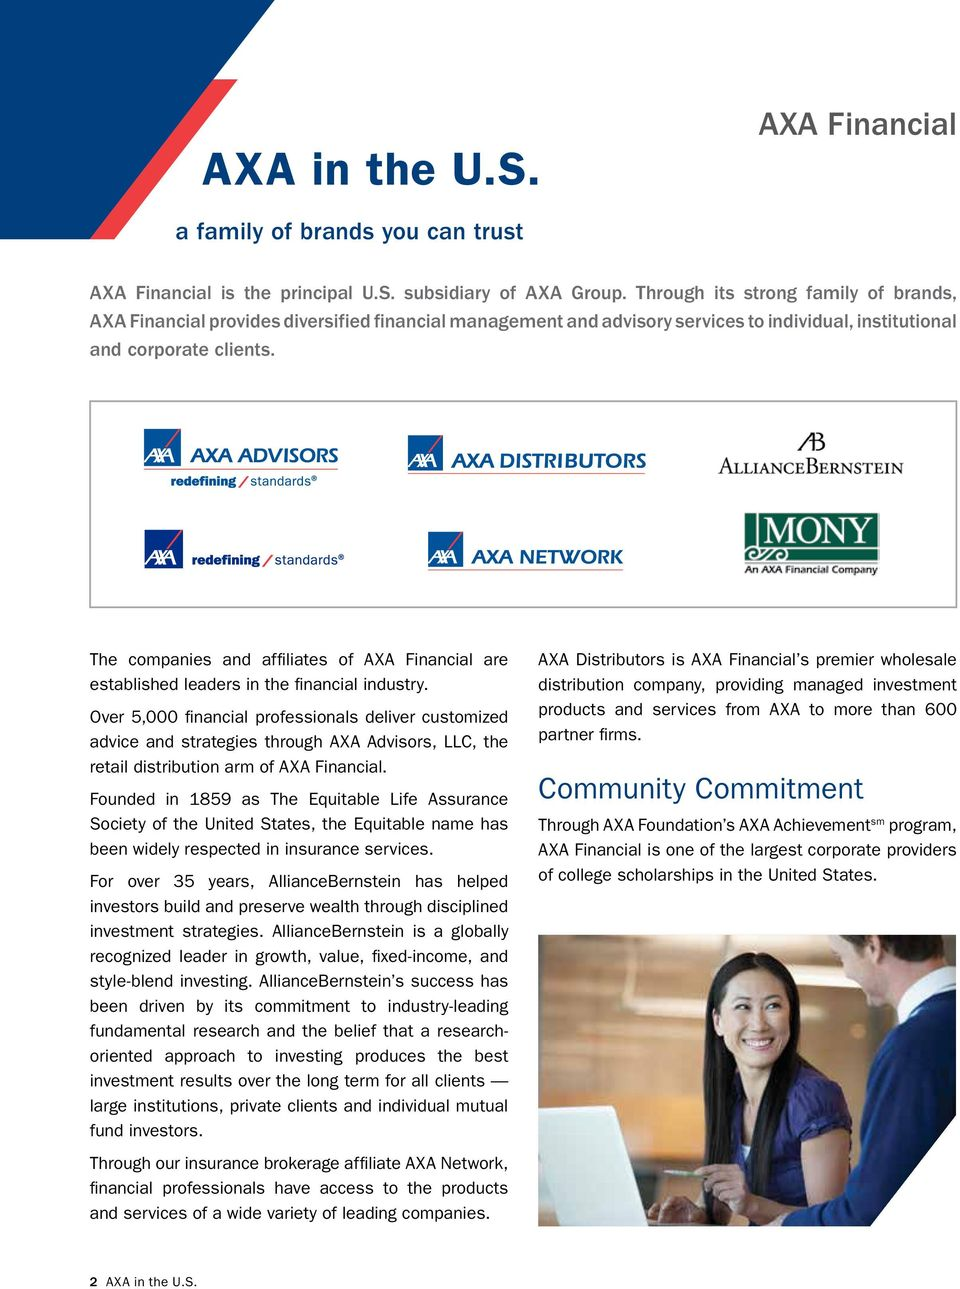 The companies and affiliates of AXA Financial are established leaders in the financial industry.